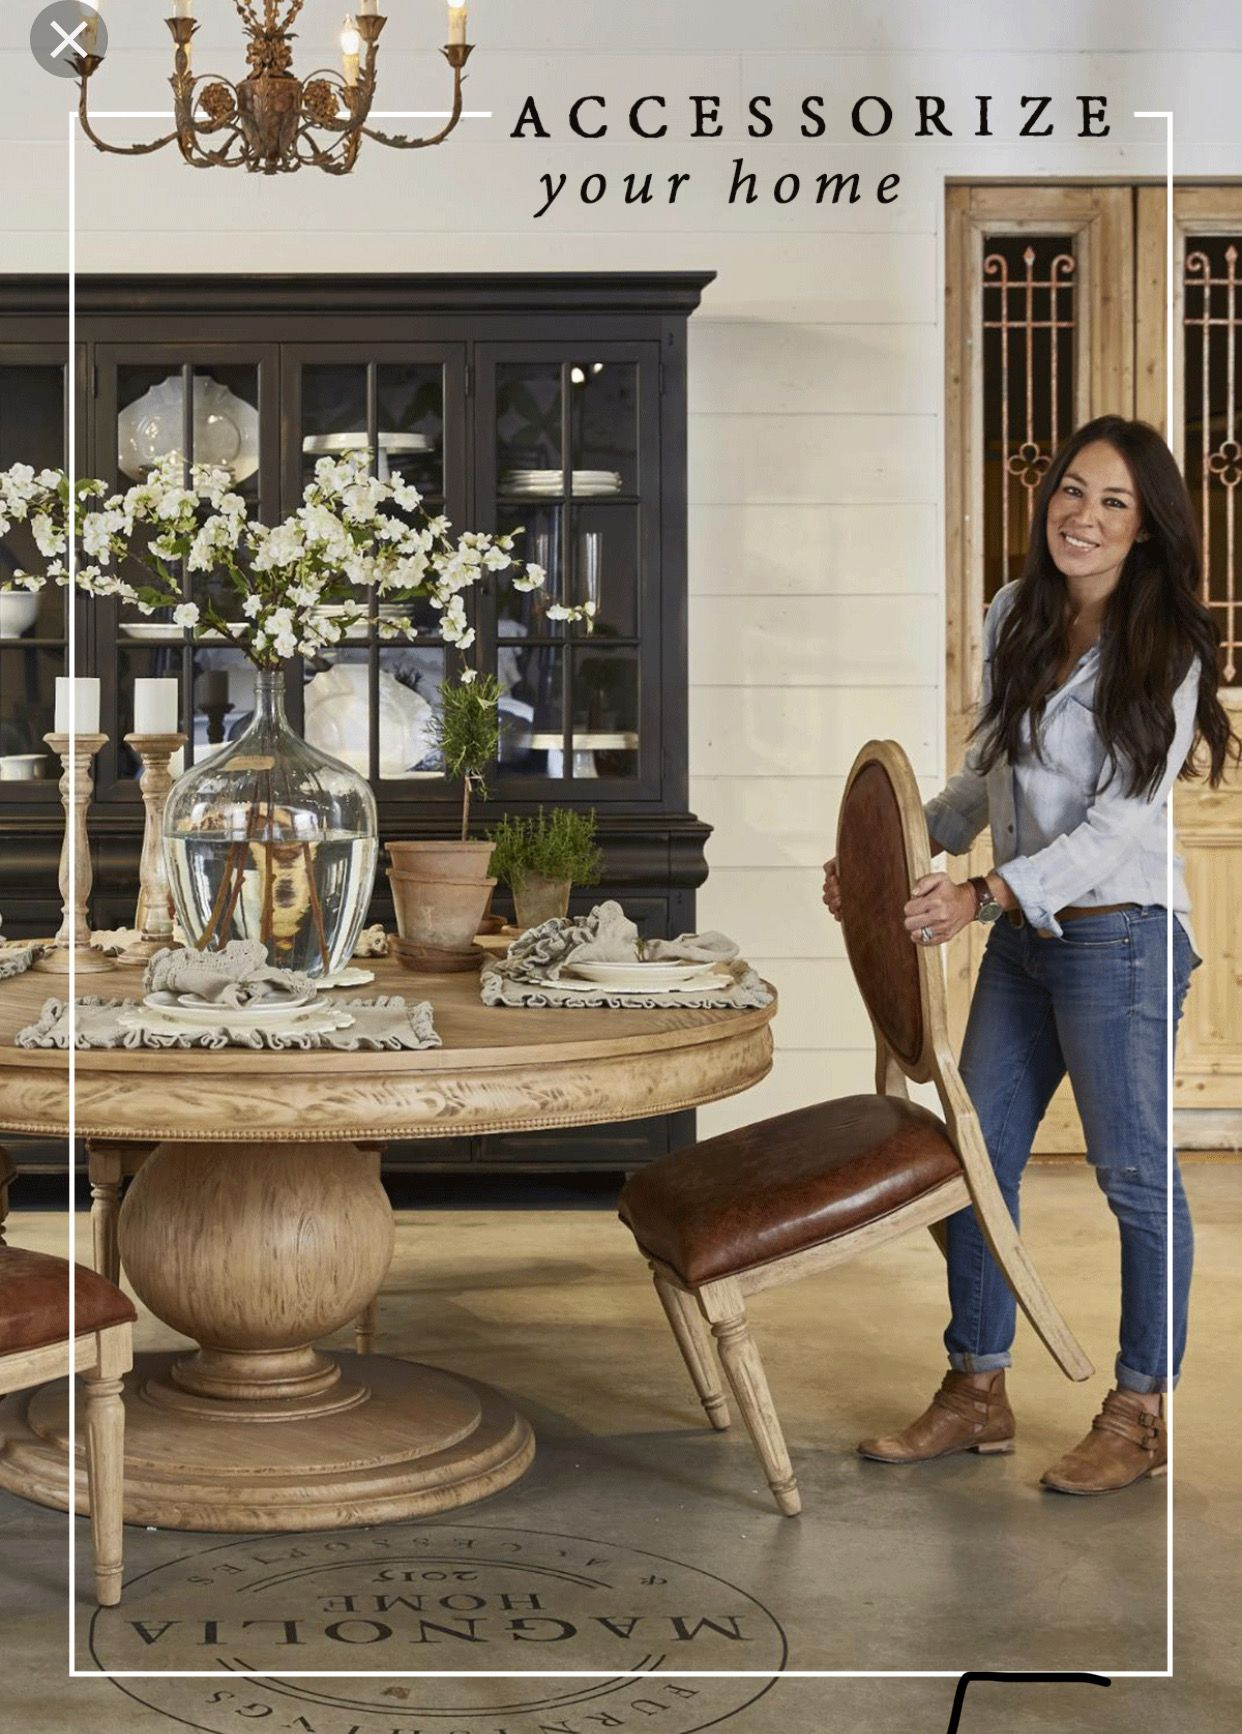 Pin By Jenny Day On Dinning Room Round Dining Table Decor Dining Room Table Centerpieces Dining Room Centerpiece